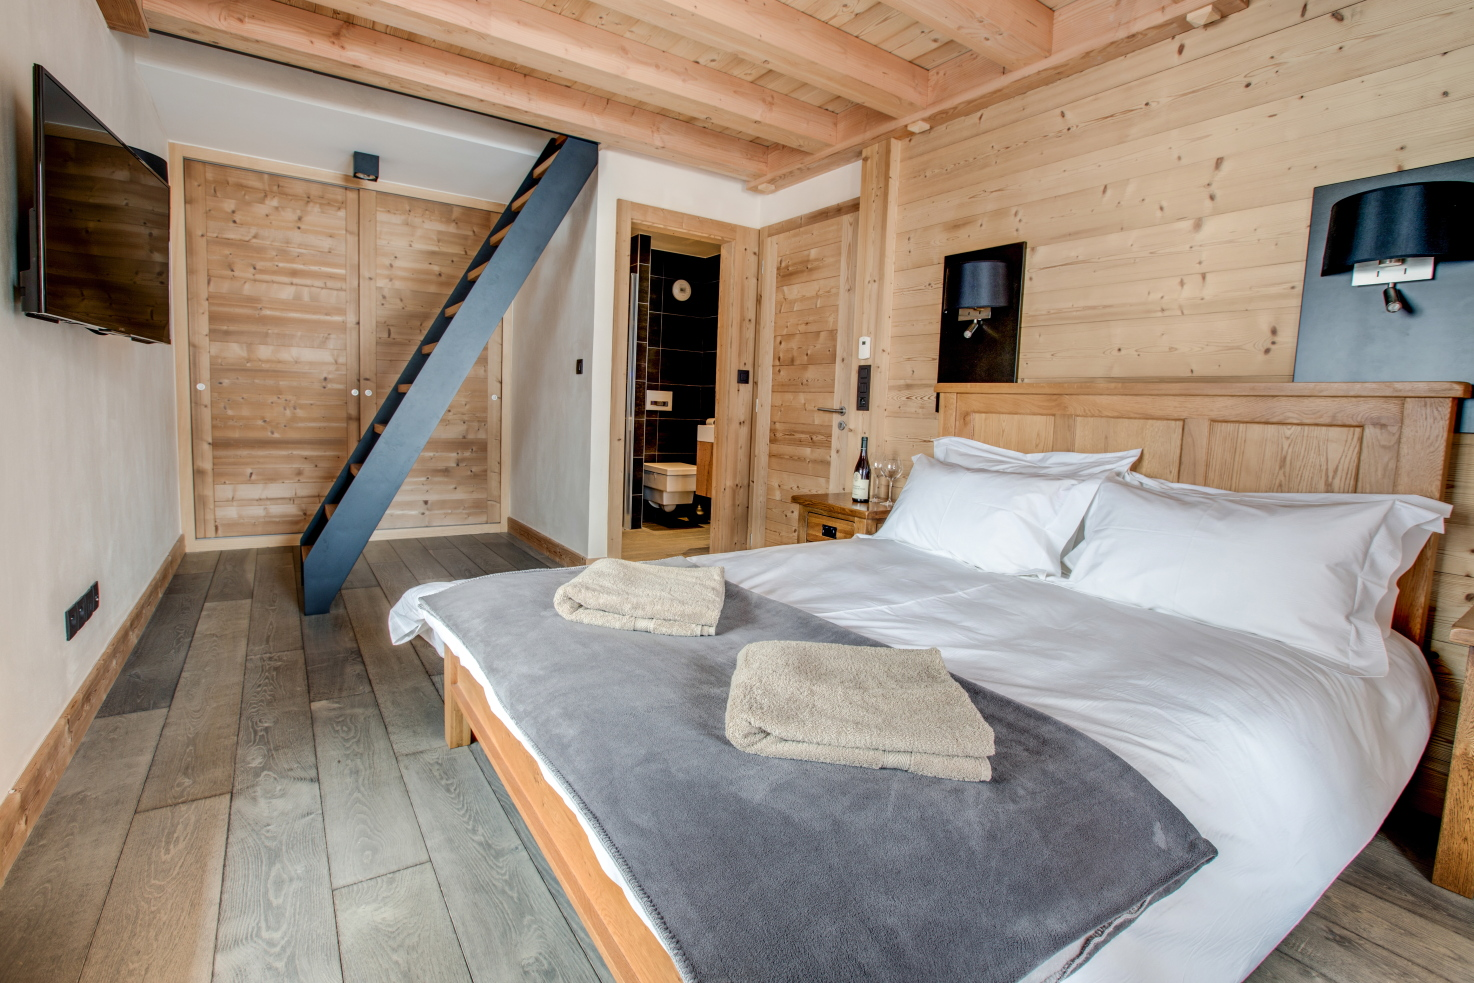 Altaka 2 Bedroom self catered apartment morzine